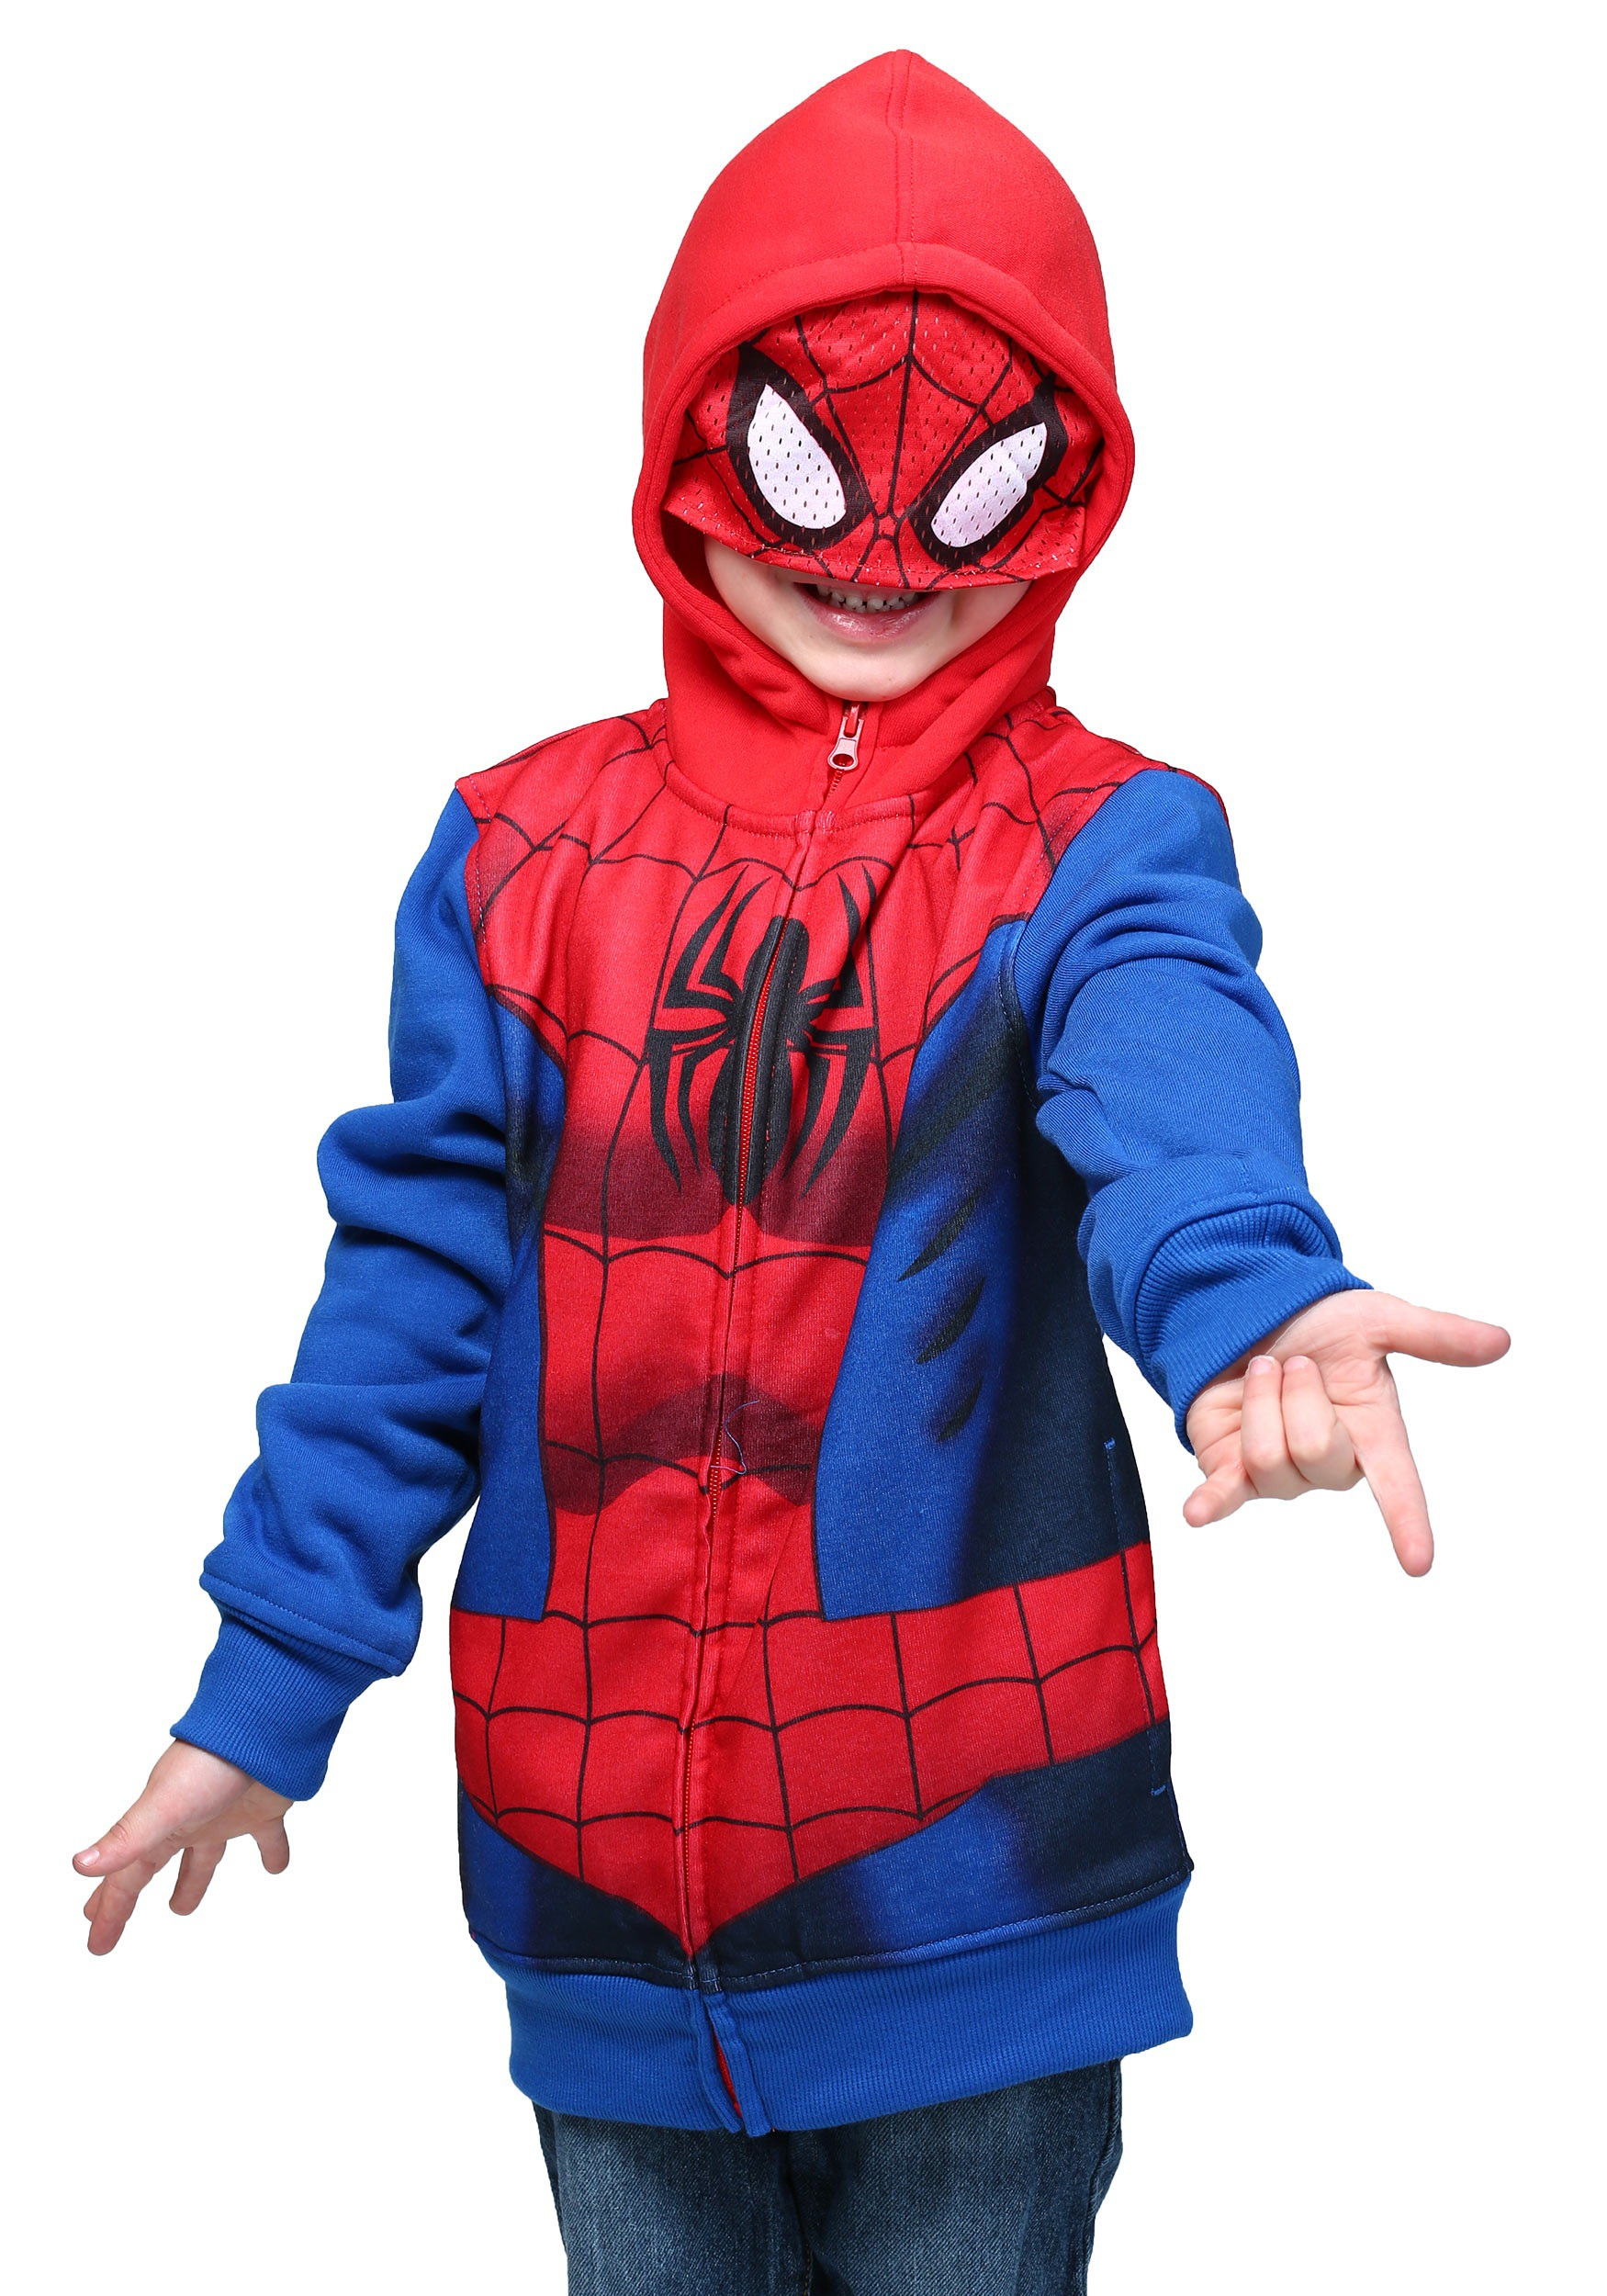 Shop for spiderman jackets hoodie online at Target. Free shipping on purchases over $35 and save 5% every day with your Target REDcard.